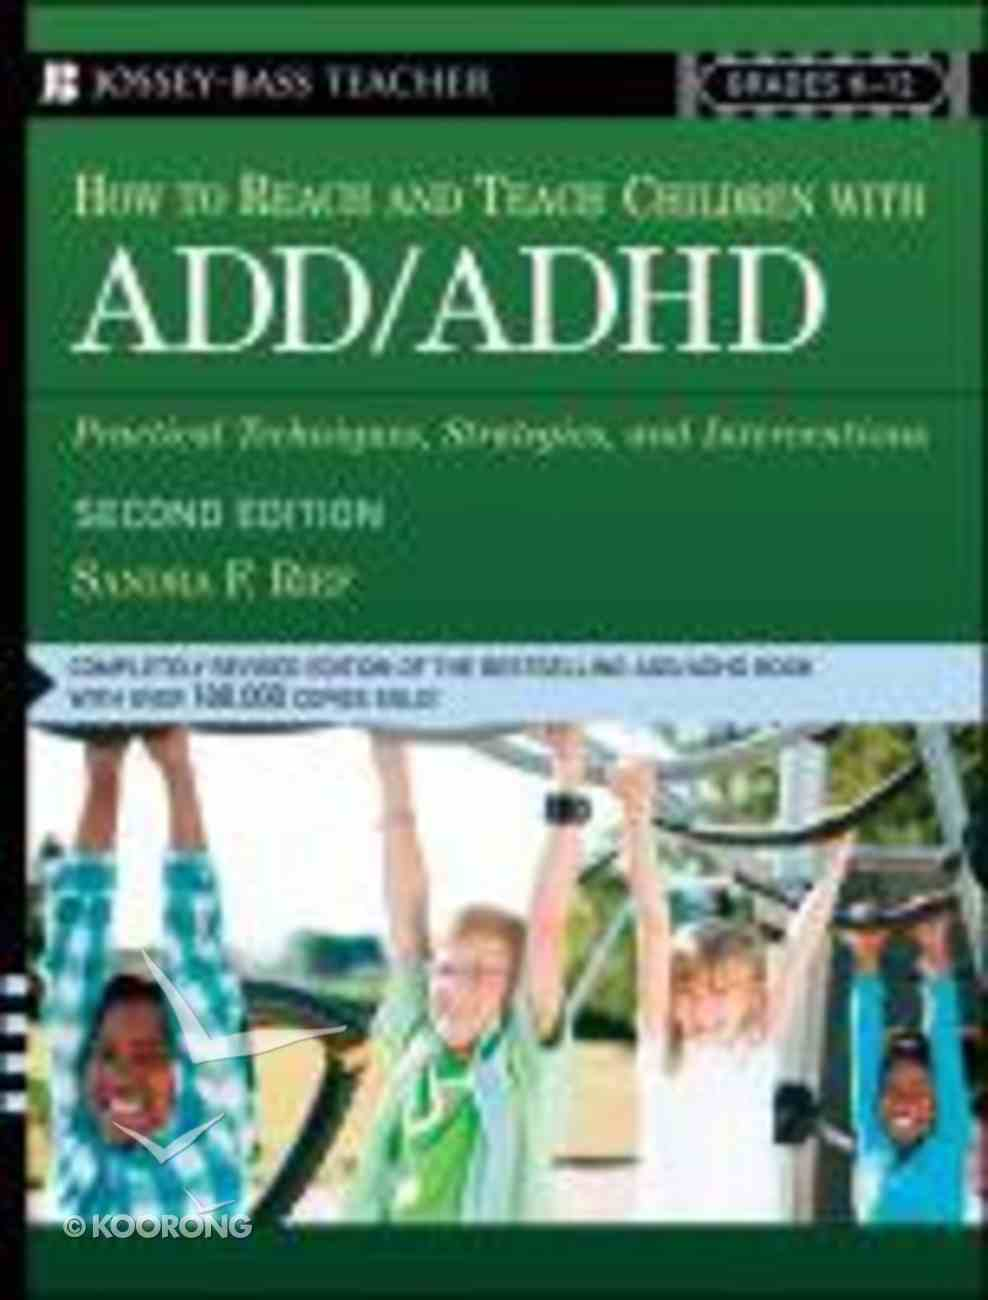 How to Reach & Teach Children With Add/Adhd Paperback